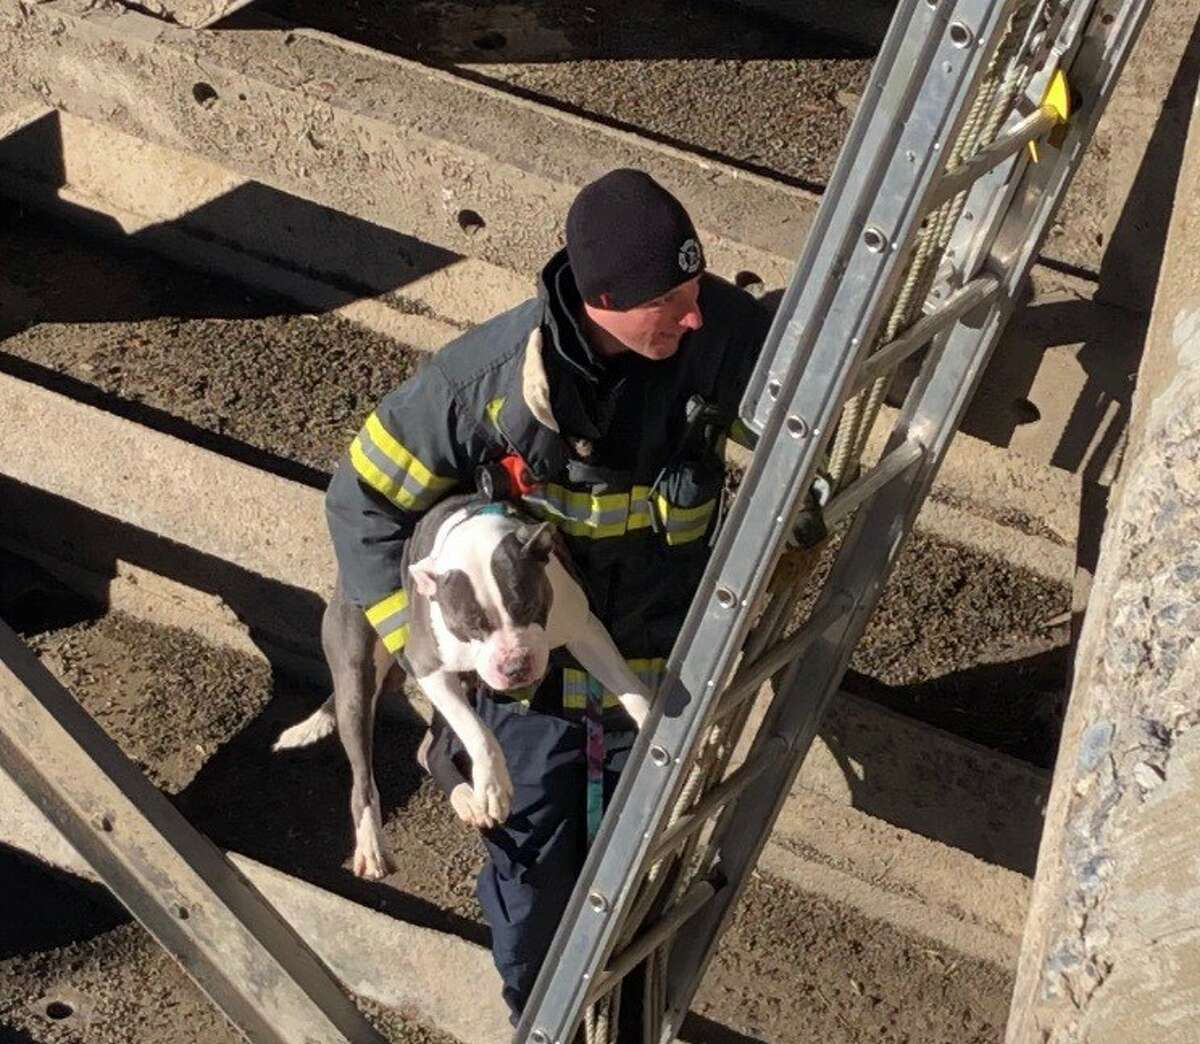 Beast, a pitbull, was rescued from the bottom of an Amsterdam canal lock Friday, Jan. 11.